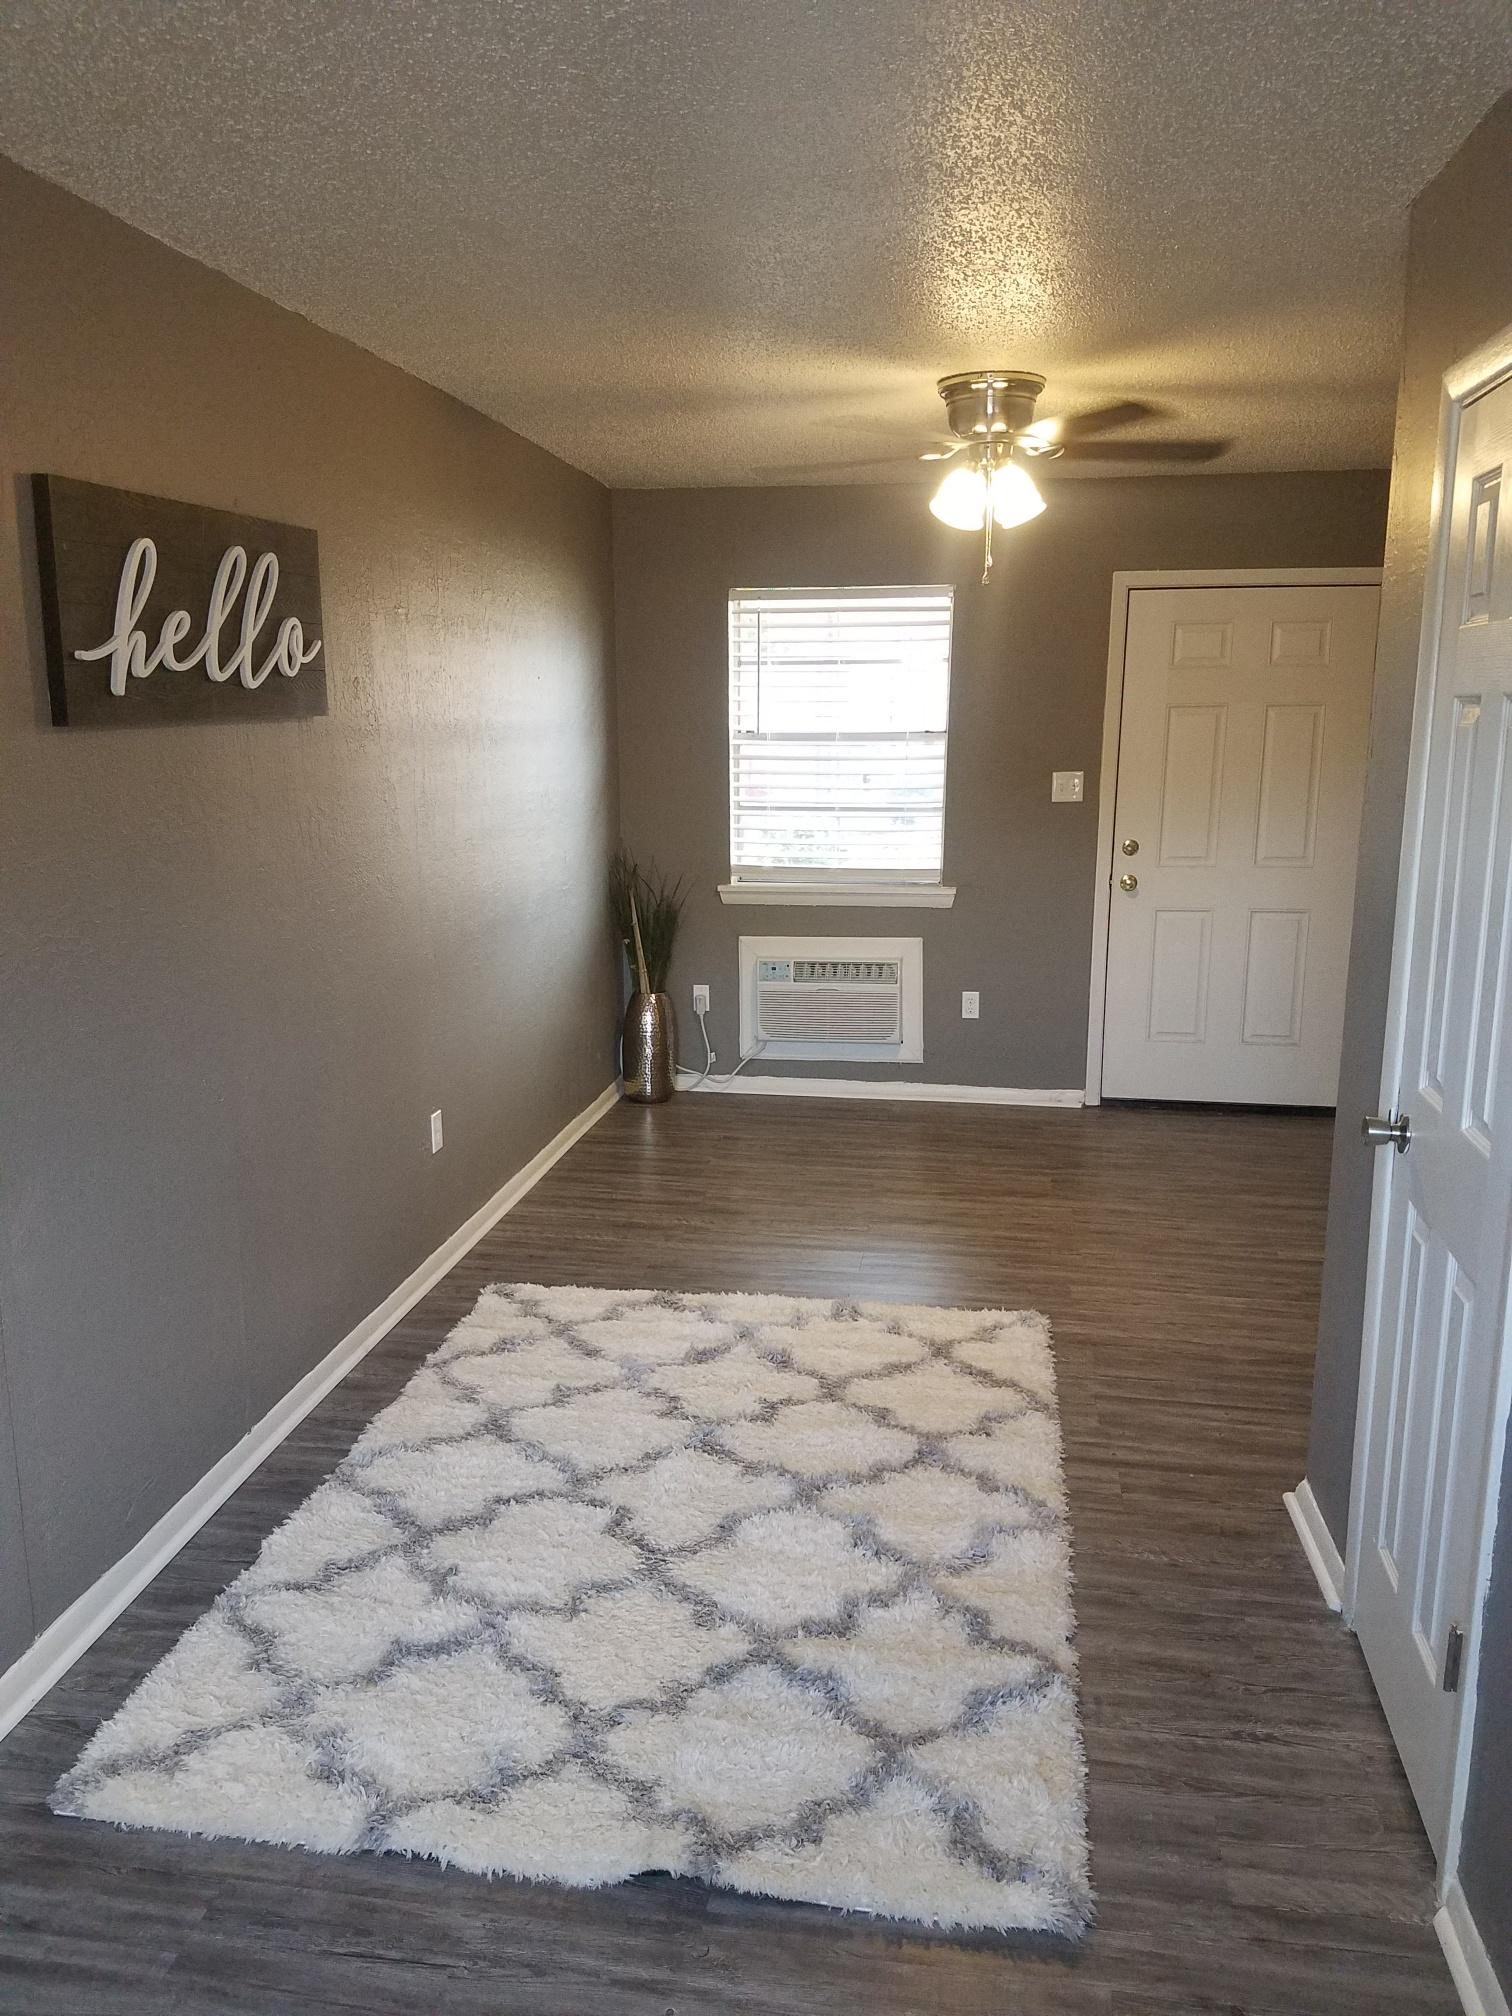 Victoria Square Apartments in Lawton Ok | Apartments in ...